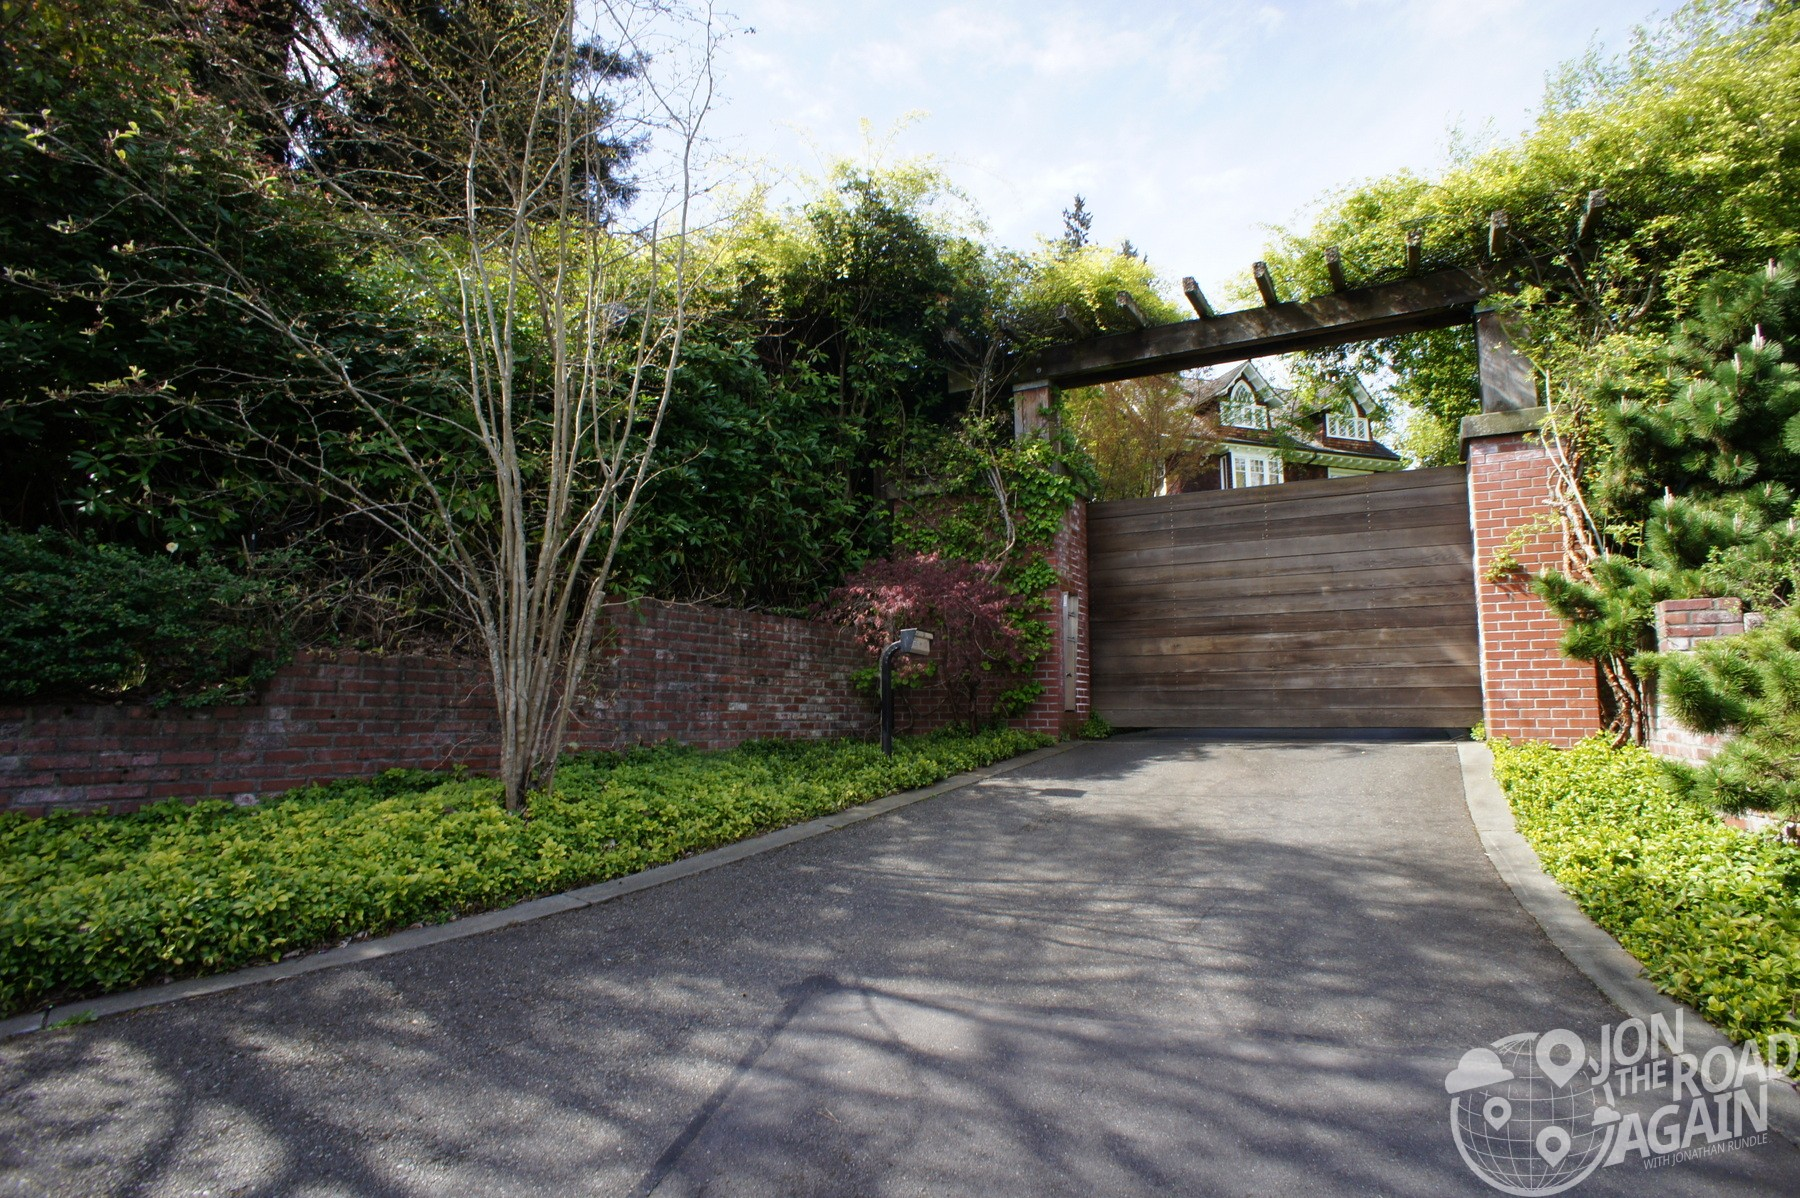 Entrance to Kurt Cobain's old house